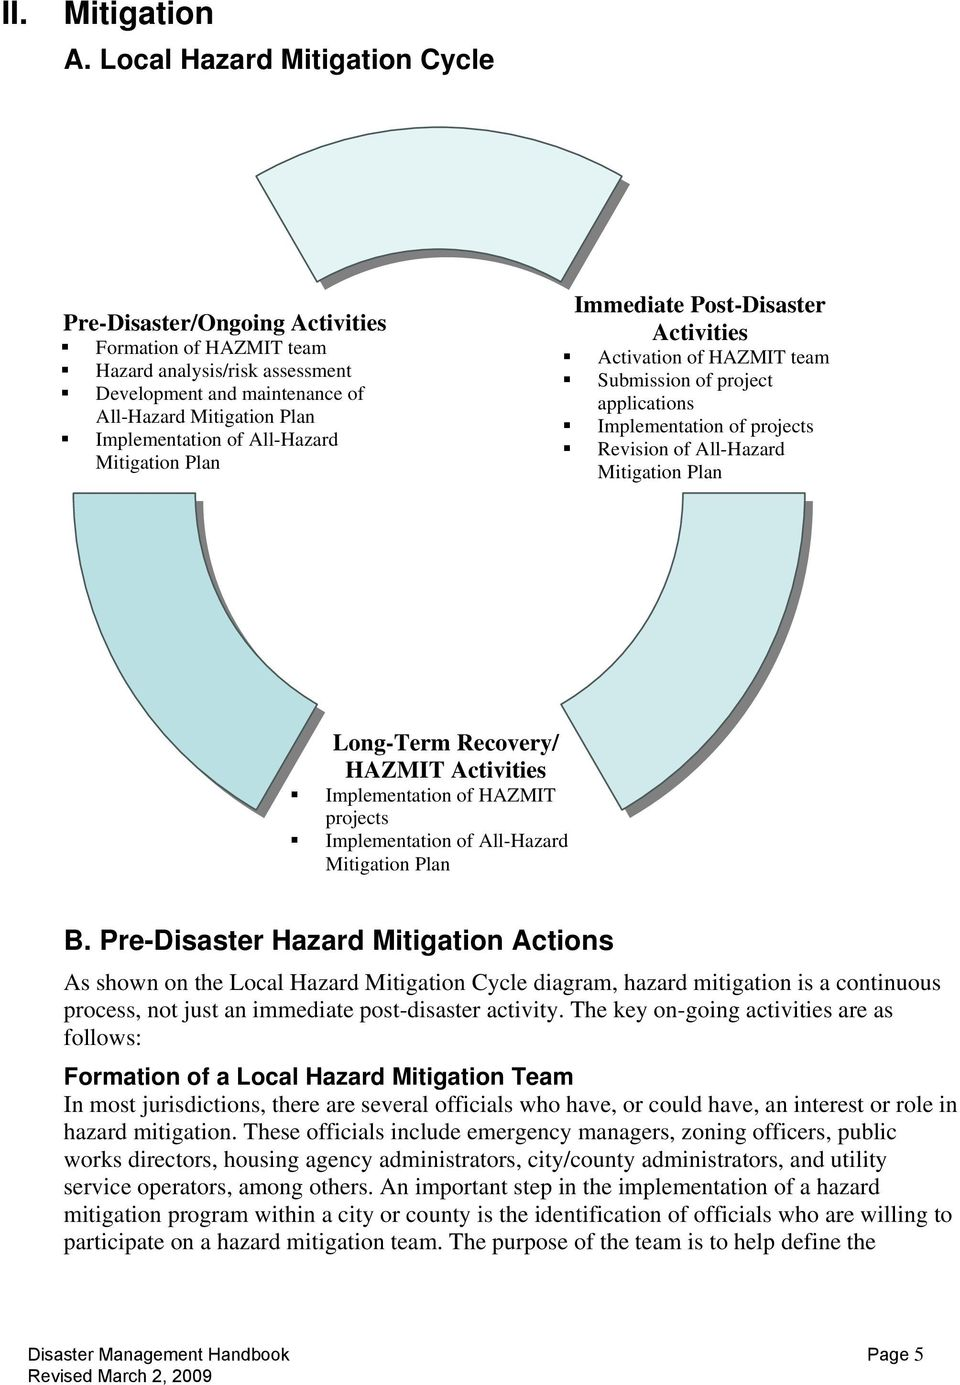 All-Hazard Mitigation Plan Immediate Post-Disaster Activities Activation of HAZMIT team Submission of project applications Implementation of projects Revision of All-Hazard Mitigation Plan Long-Term